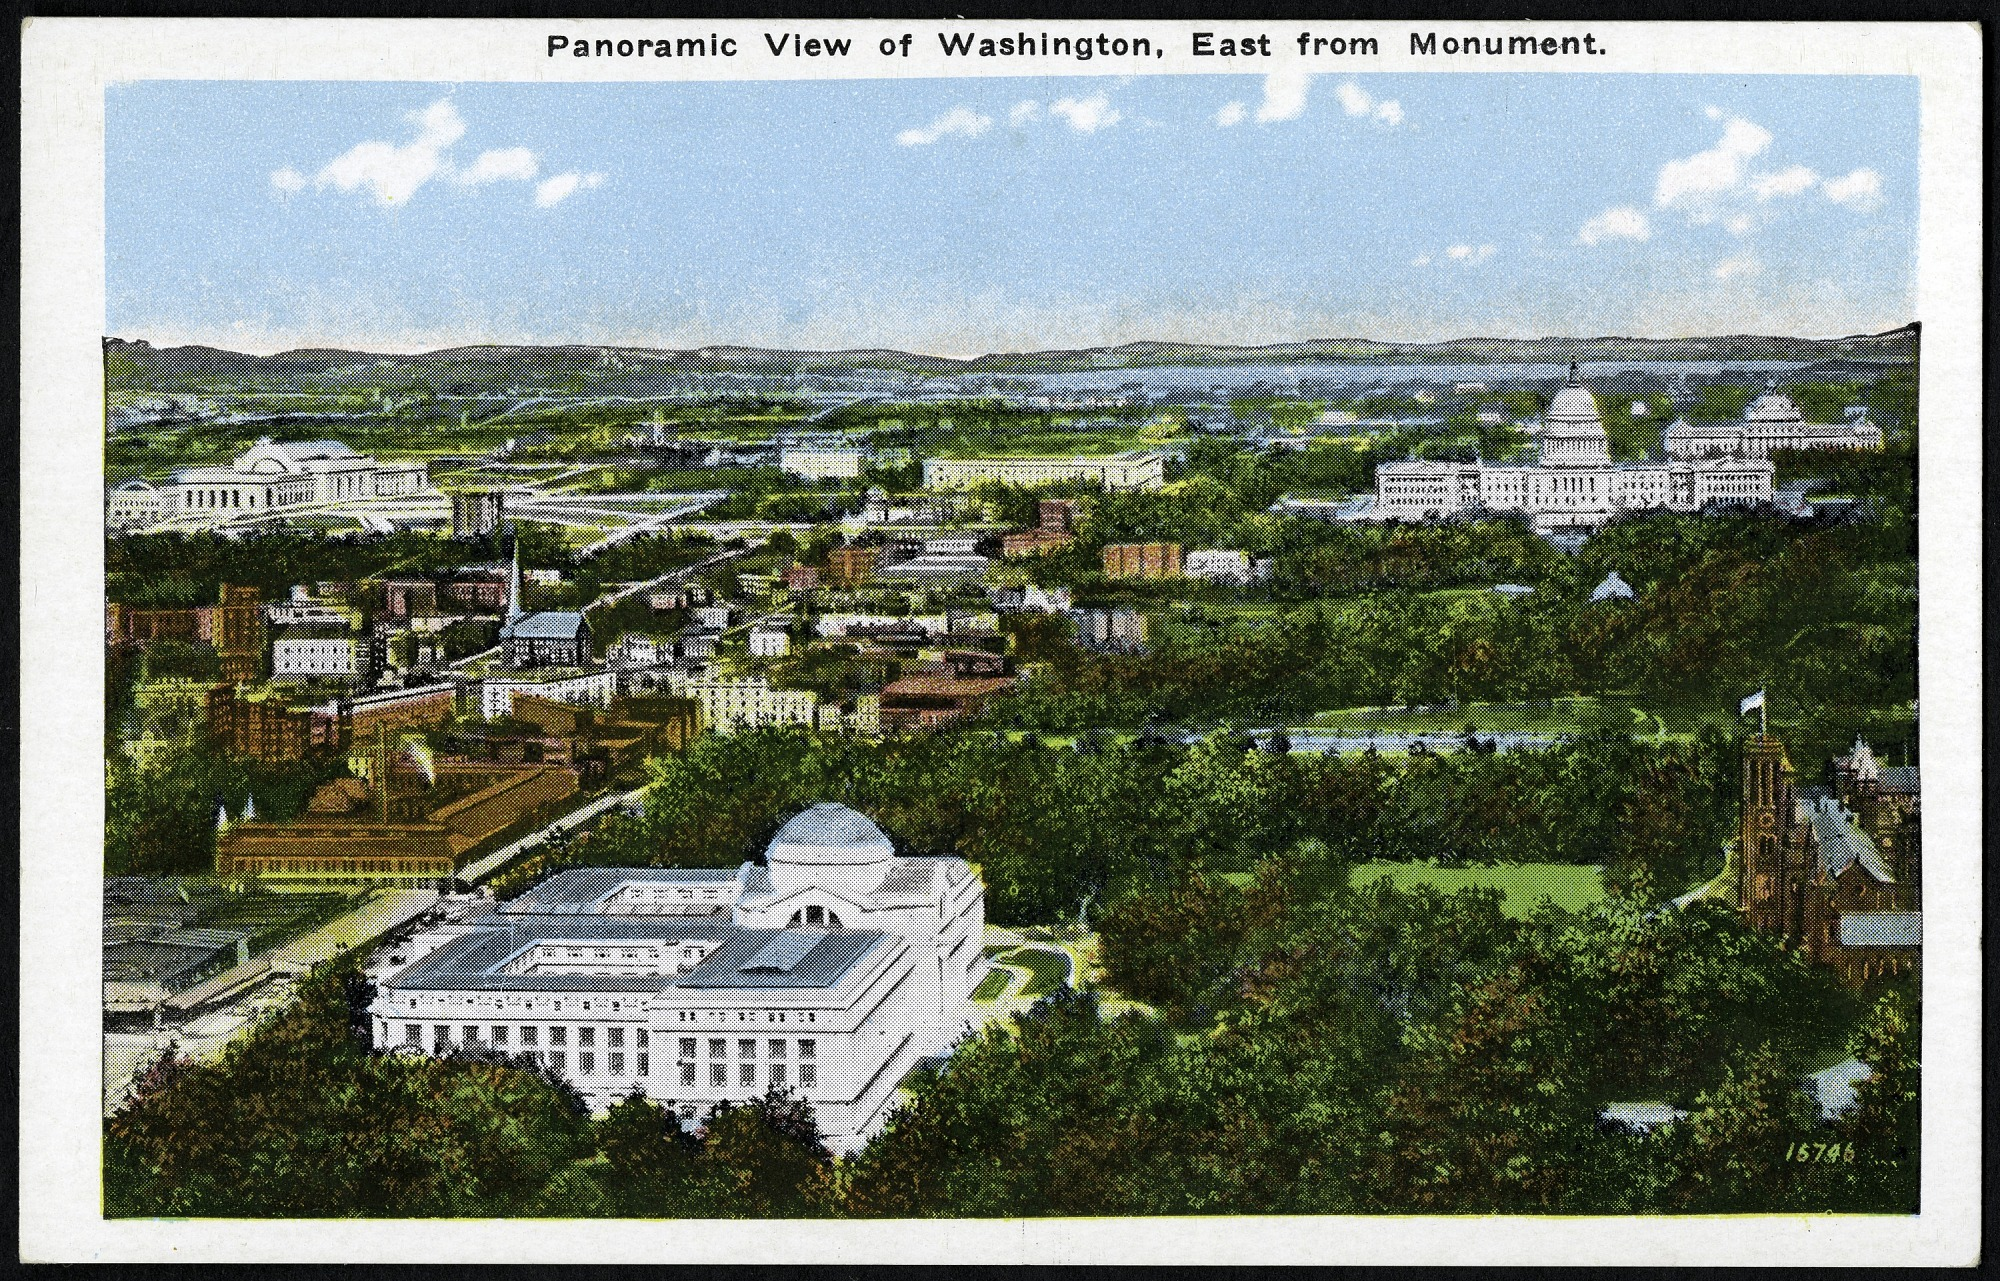 Postcard with a Panoramic View of Washington